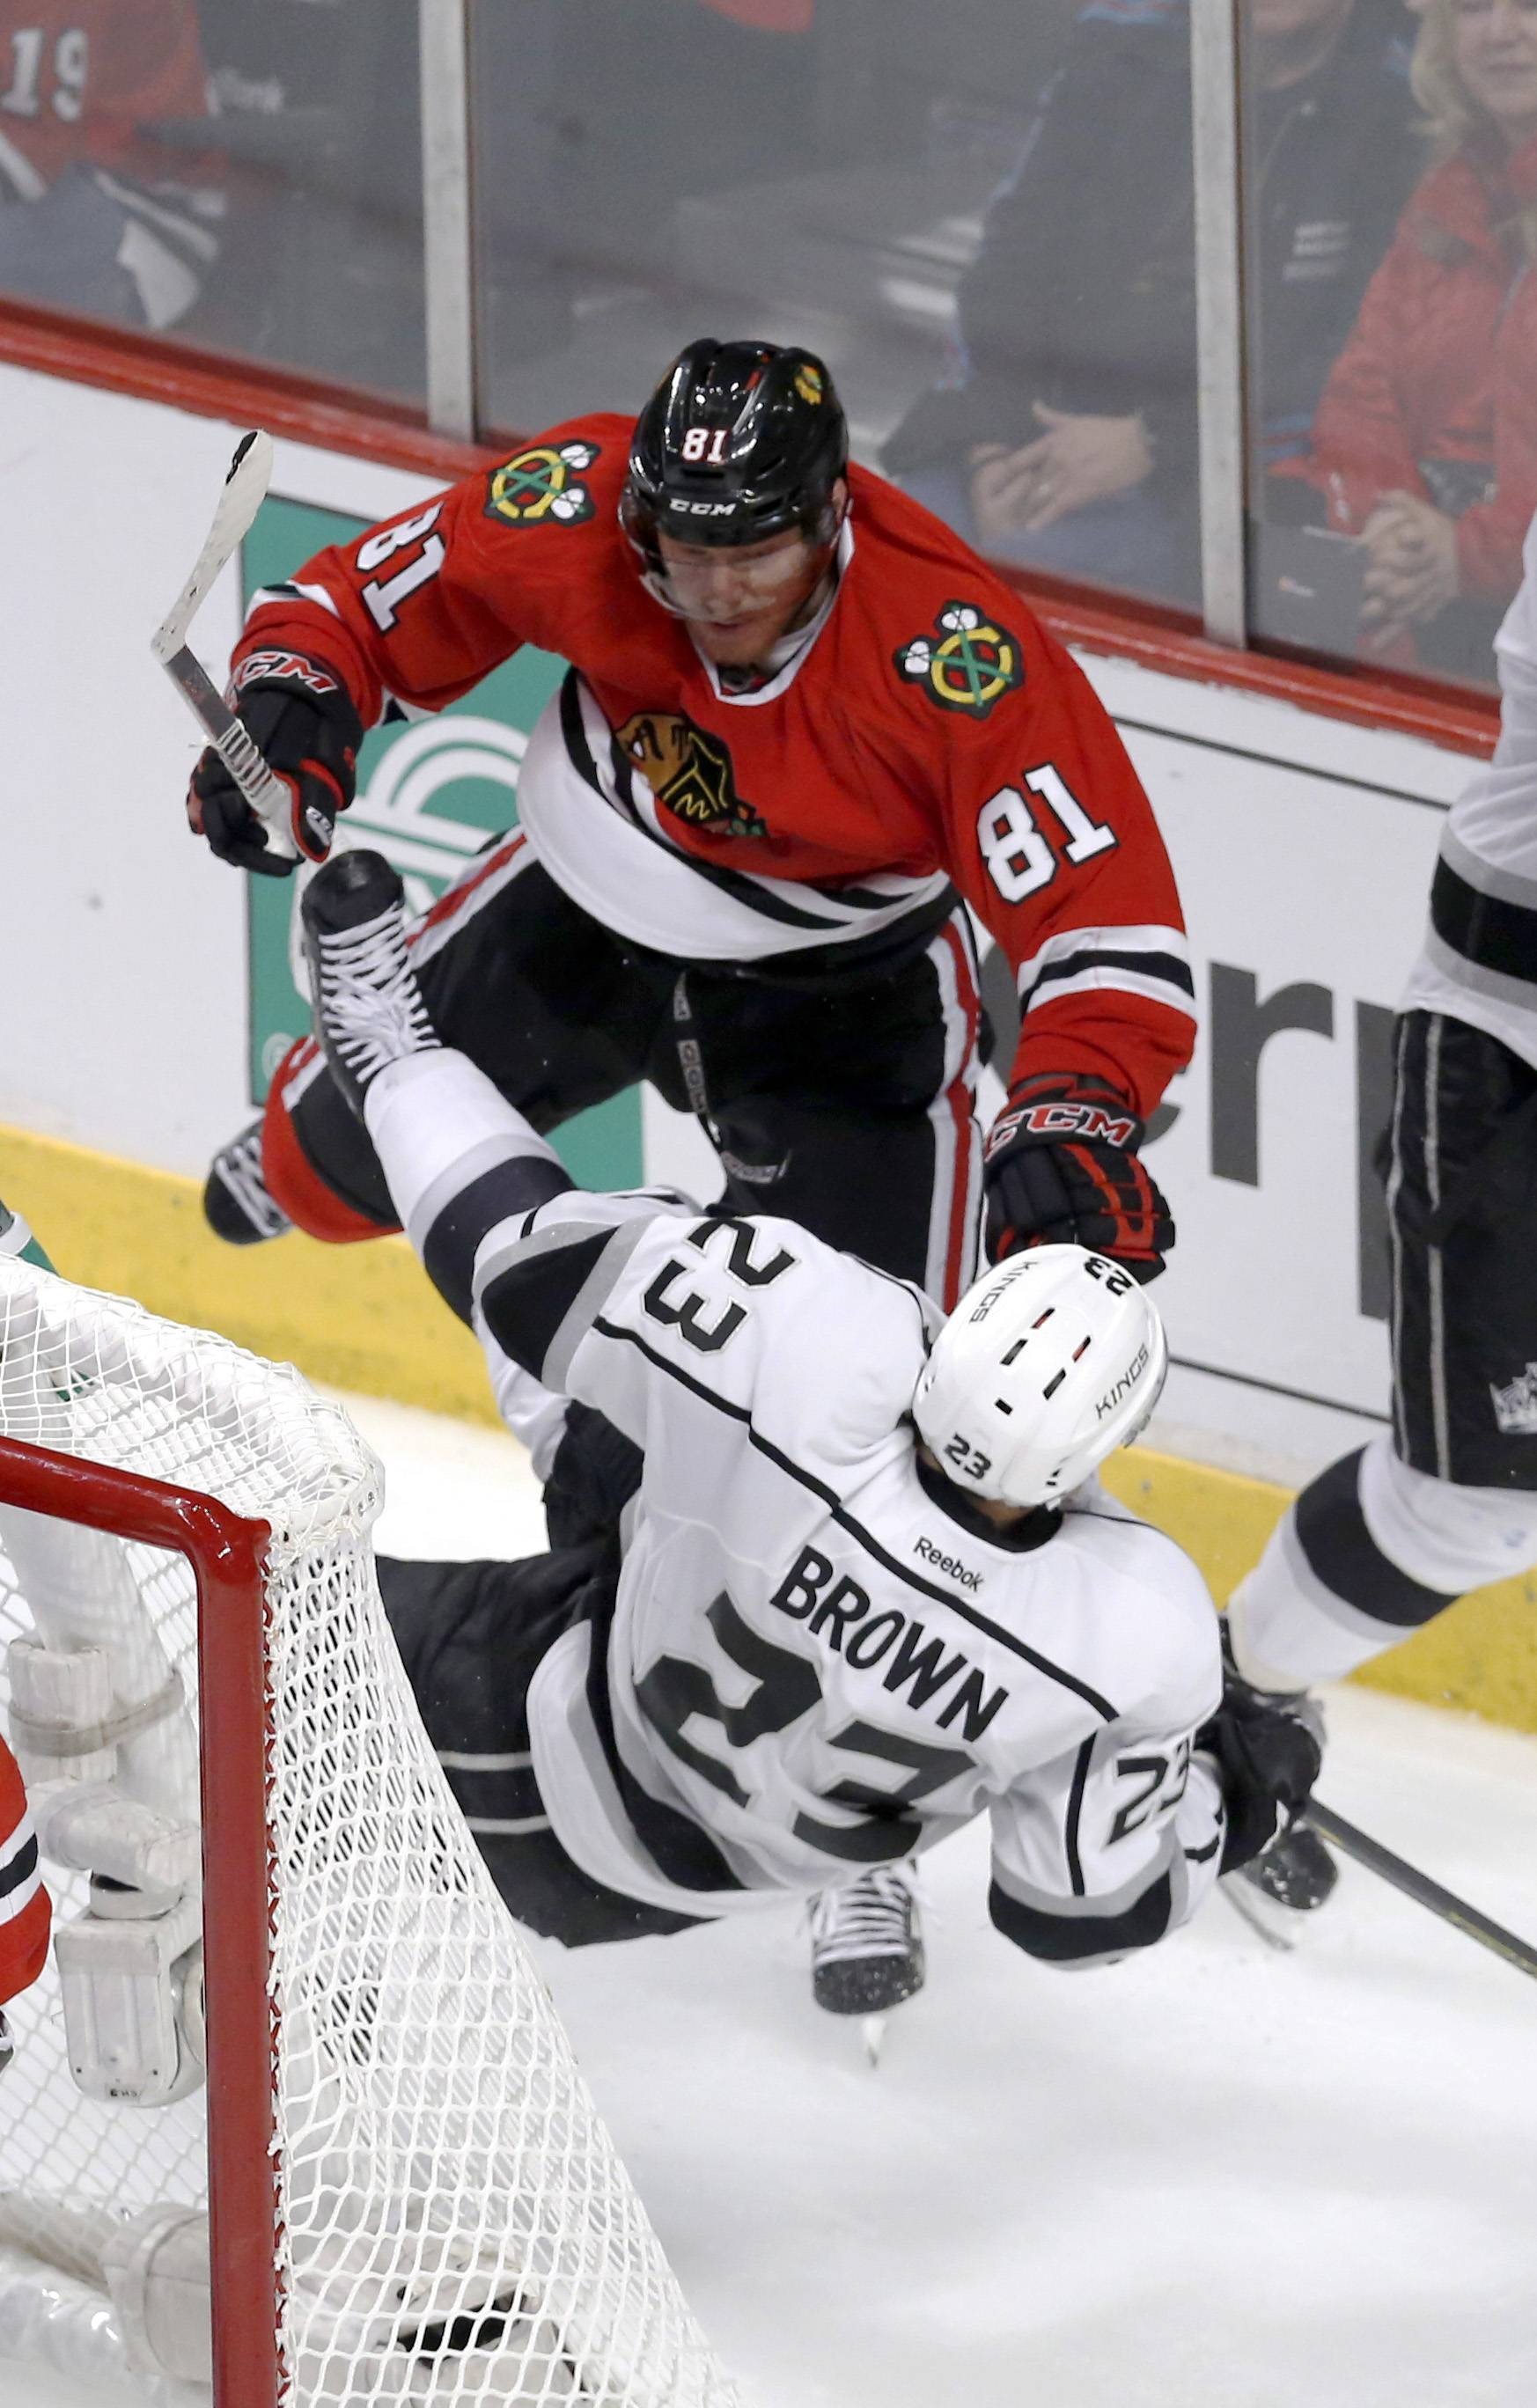 Chicago Blackhawks right wing Marian Hossa (81) checks Los Angeles Kings right wing Dustin Brown (23) behind the net during the third period.